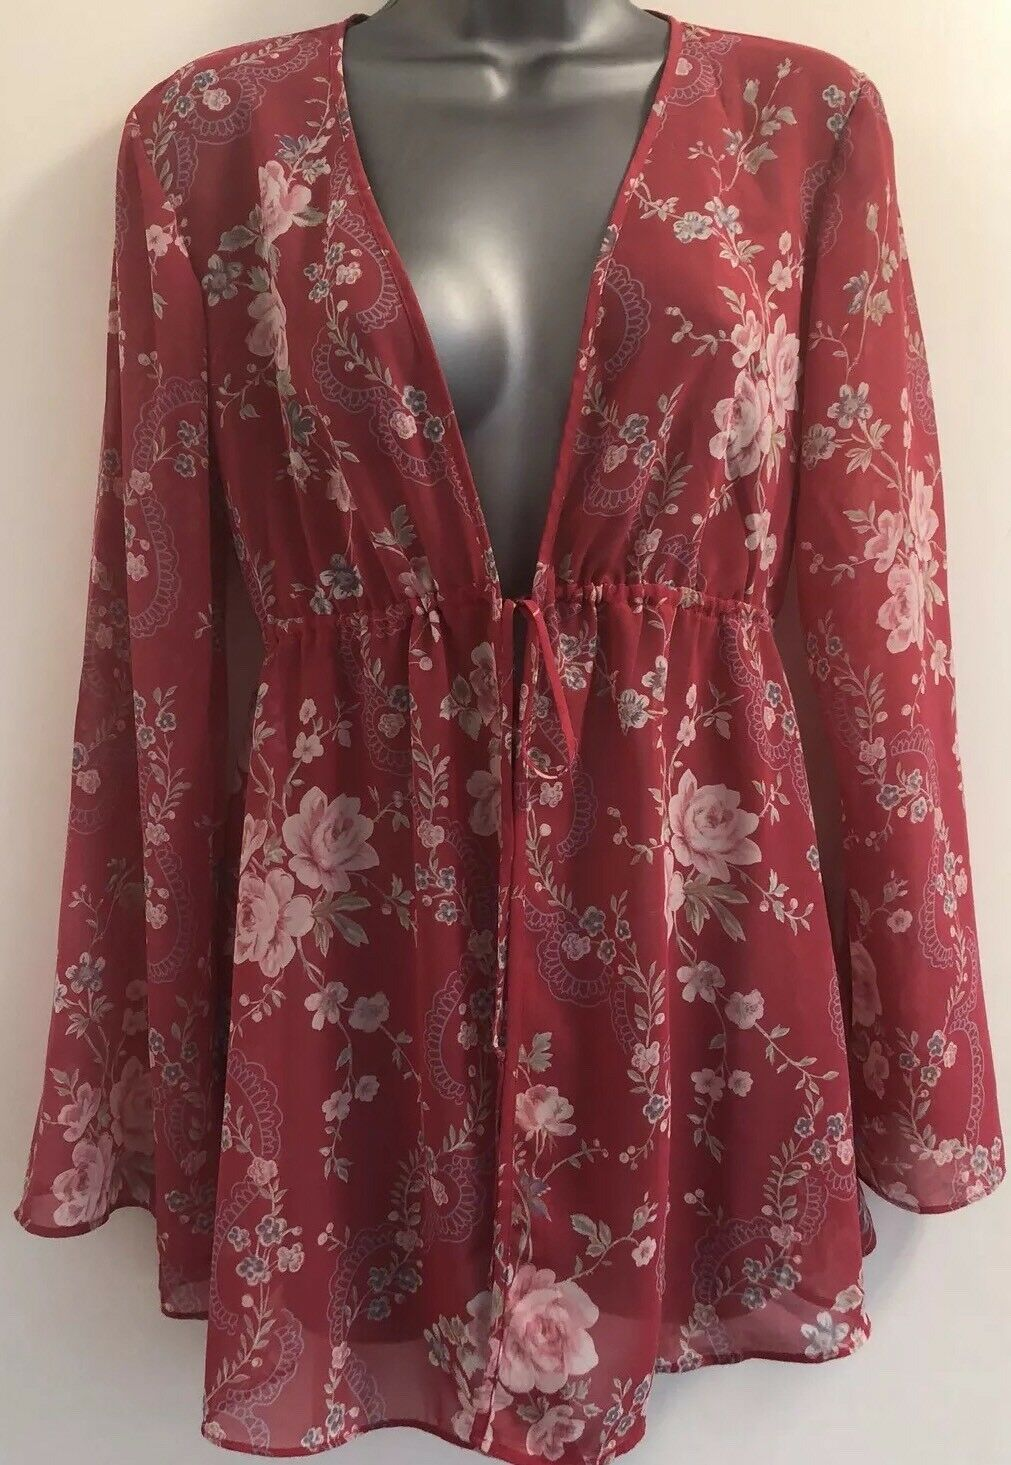 Victoria's Secret Red Floral Sheer Robe Cover-Up Top Extra-Small Small